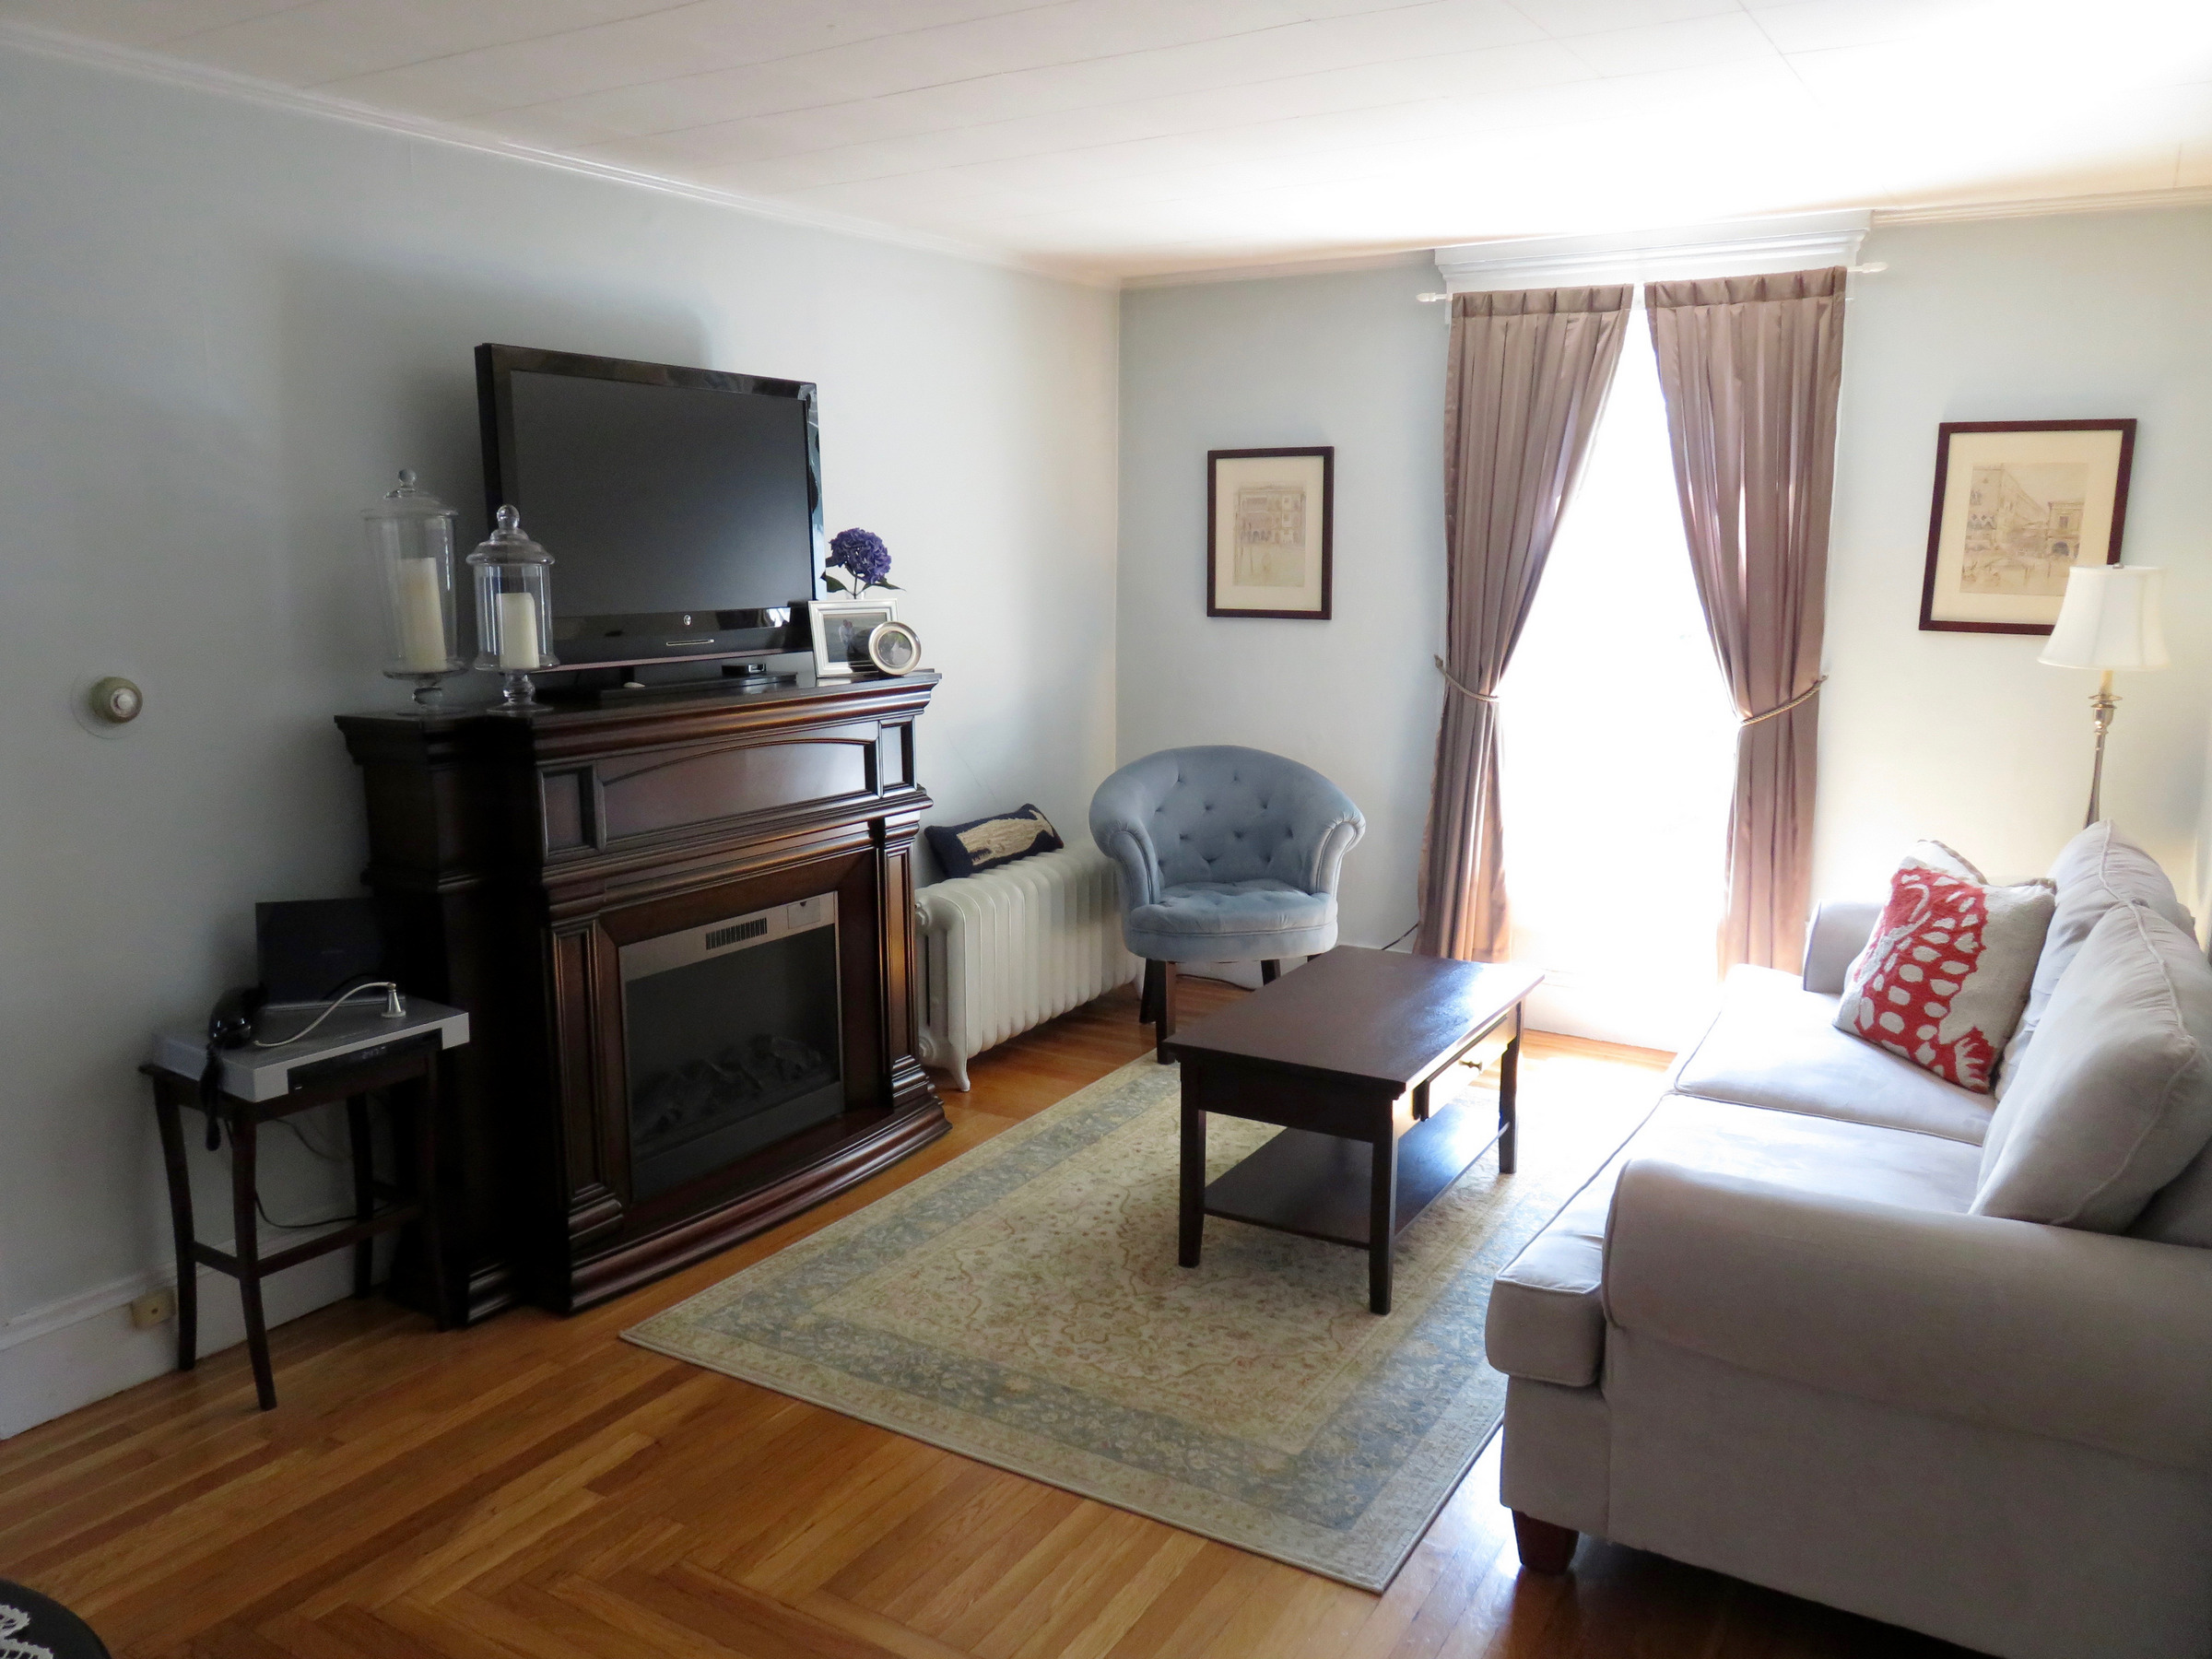 Additional photo for property listing at Almy Street Condominiums 14 Almy Street 2 Newport, Rhode Island 02840 Estados Unidos